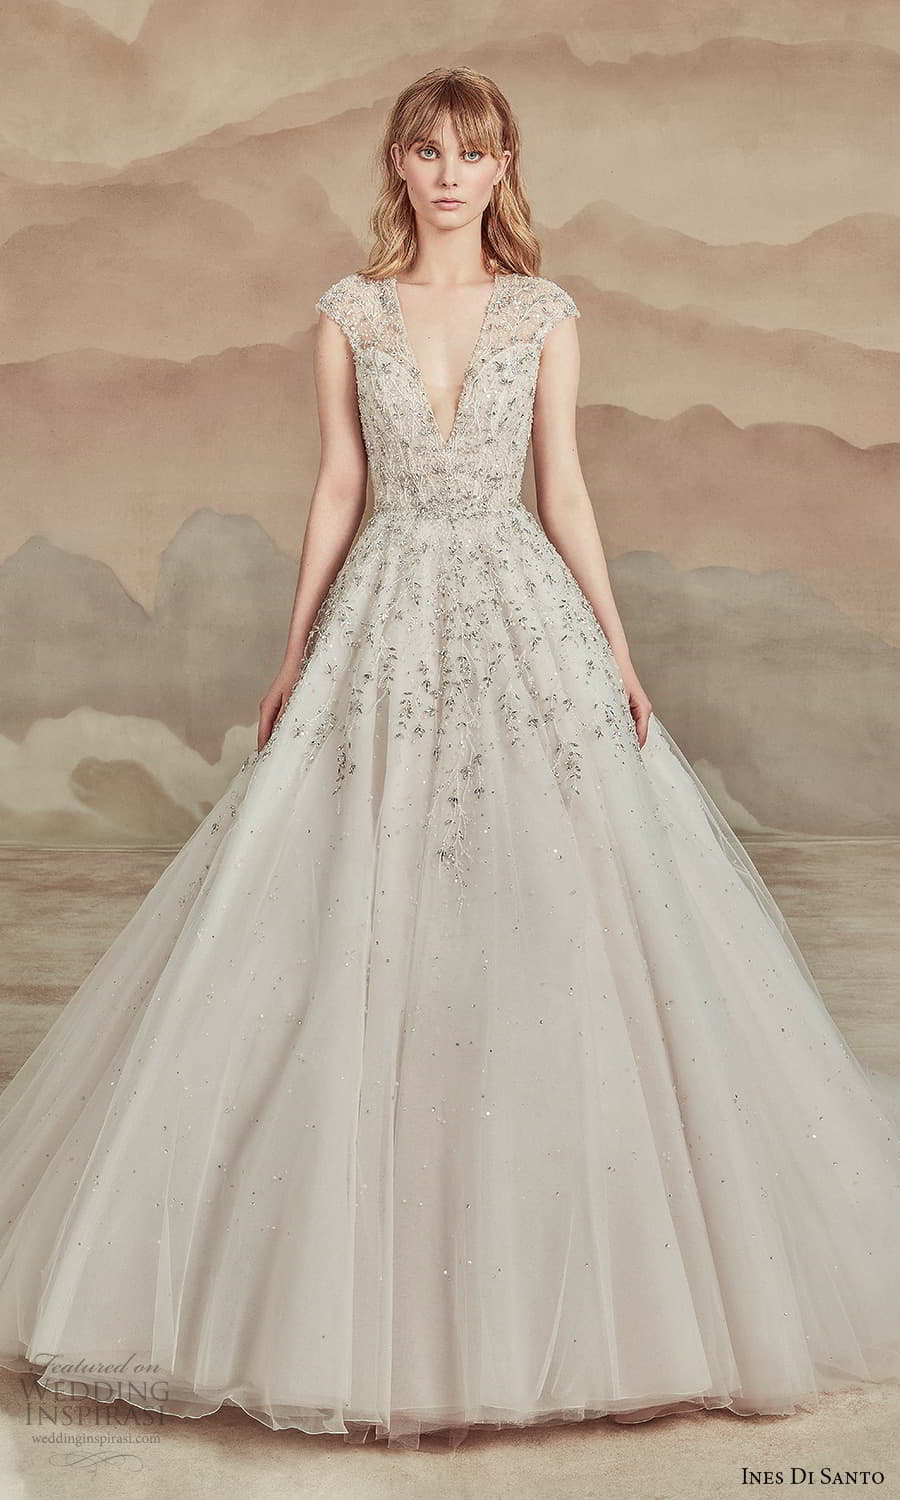 ines di santo spring 2022 bridal cap sleeves v neckline embellished bodice a line ball gown wedding dress chapel train (21) mv